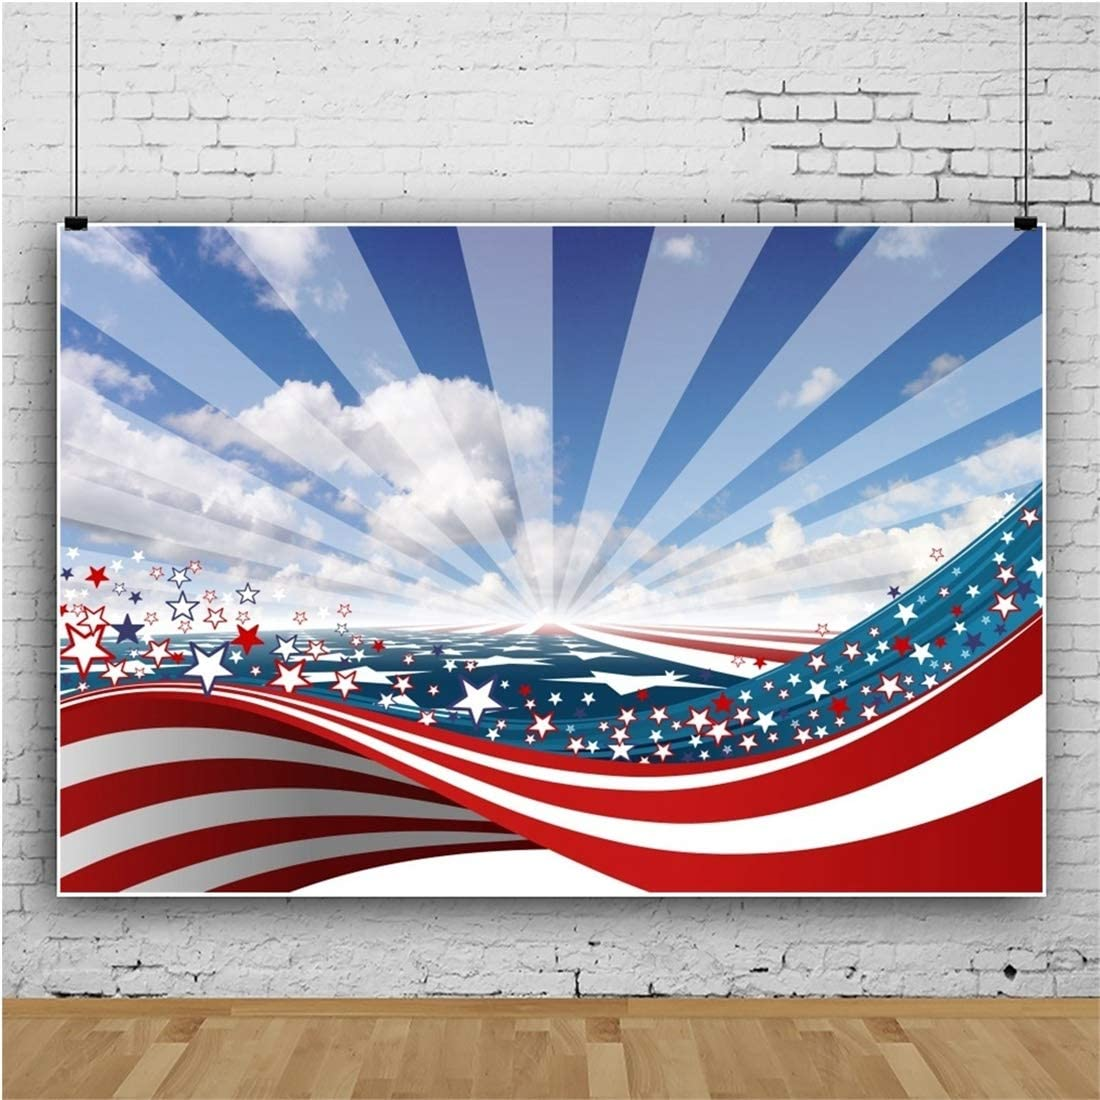 Yeele 10x8ft Independence Day Photography Background Cartoon American Flag Blue Sky White Cloud Sea Ocean Photo Backdrop Studio Props Video Drape